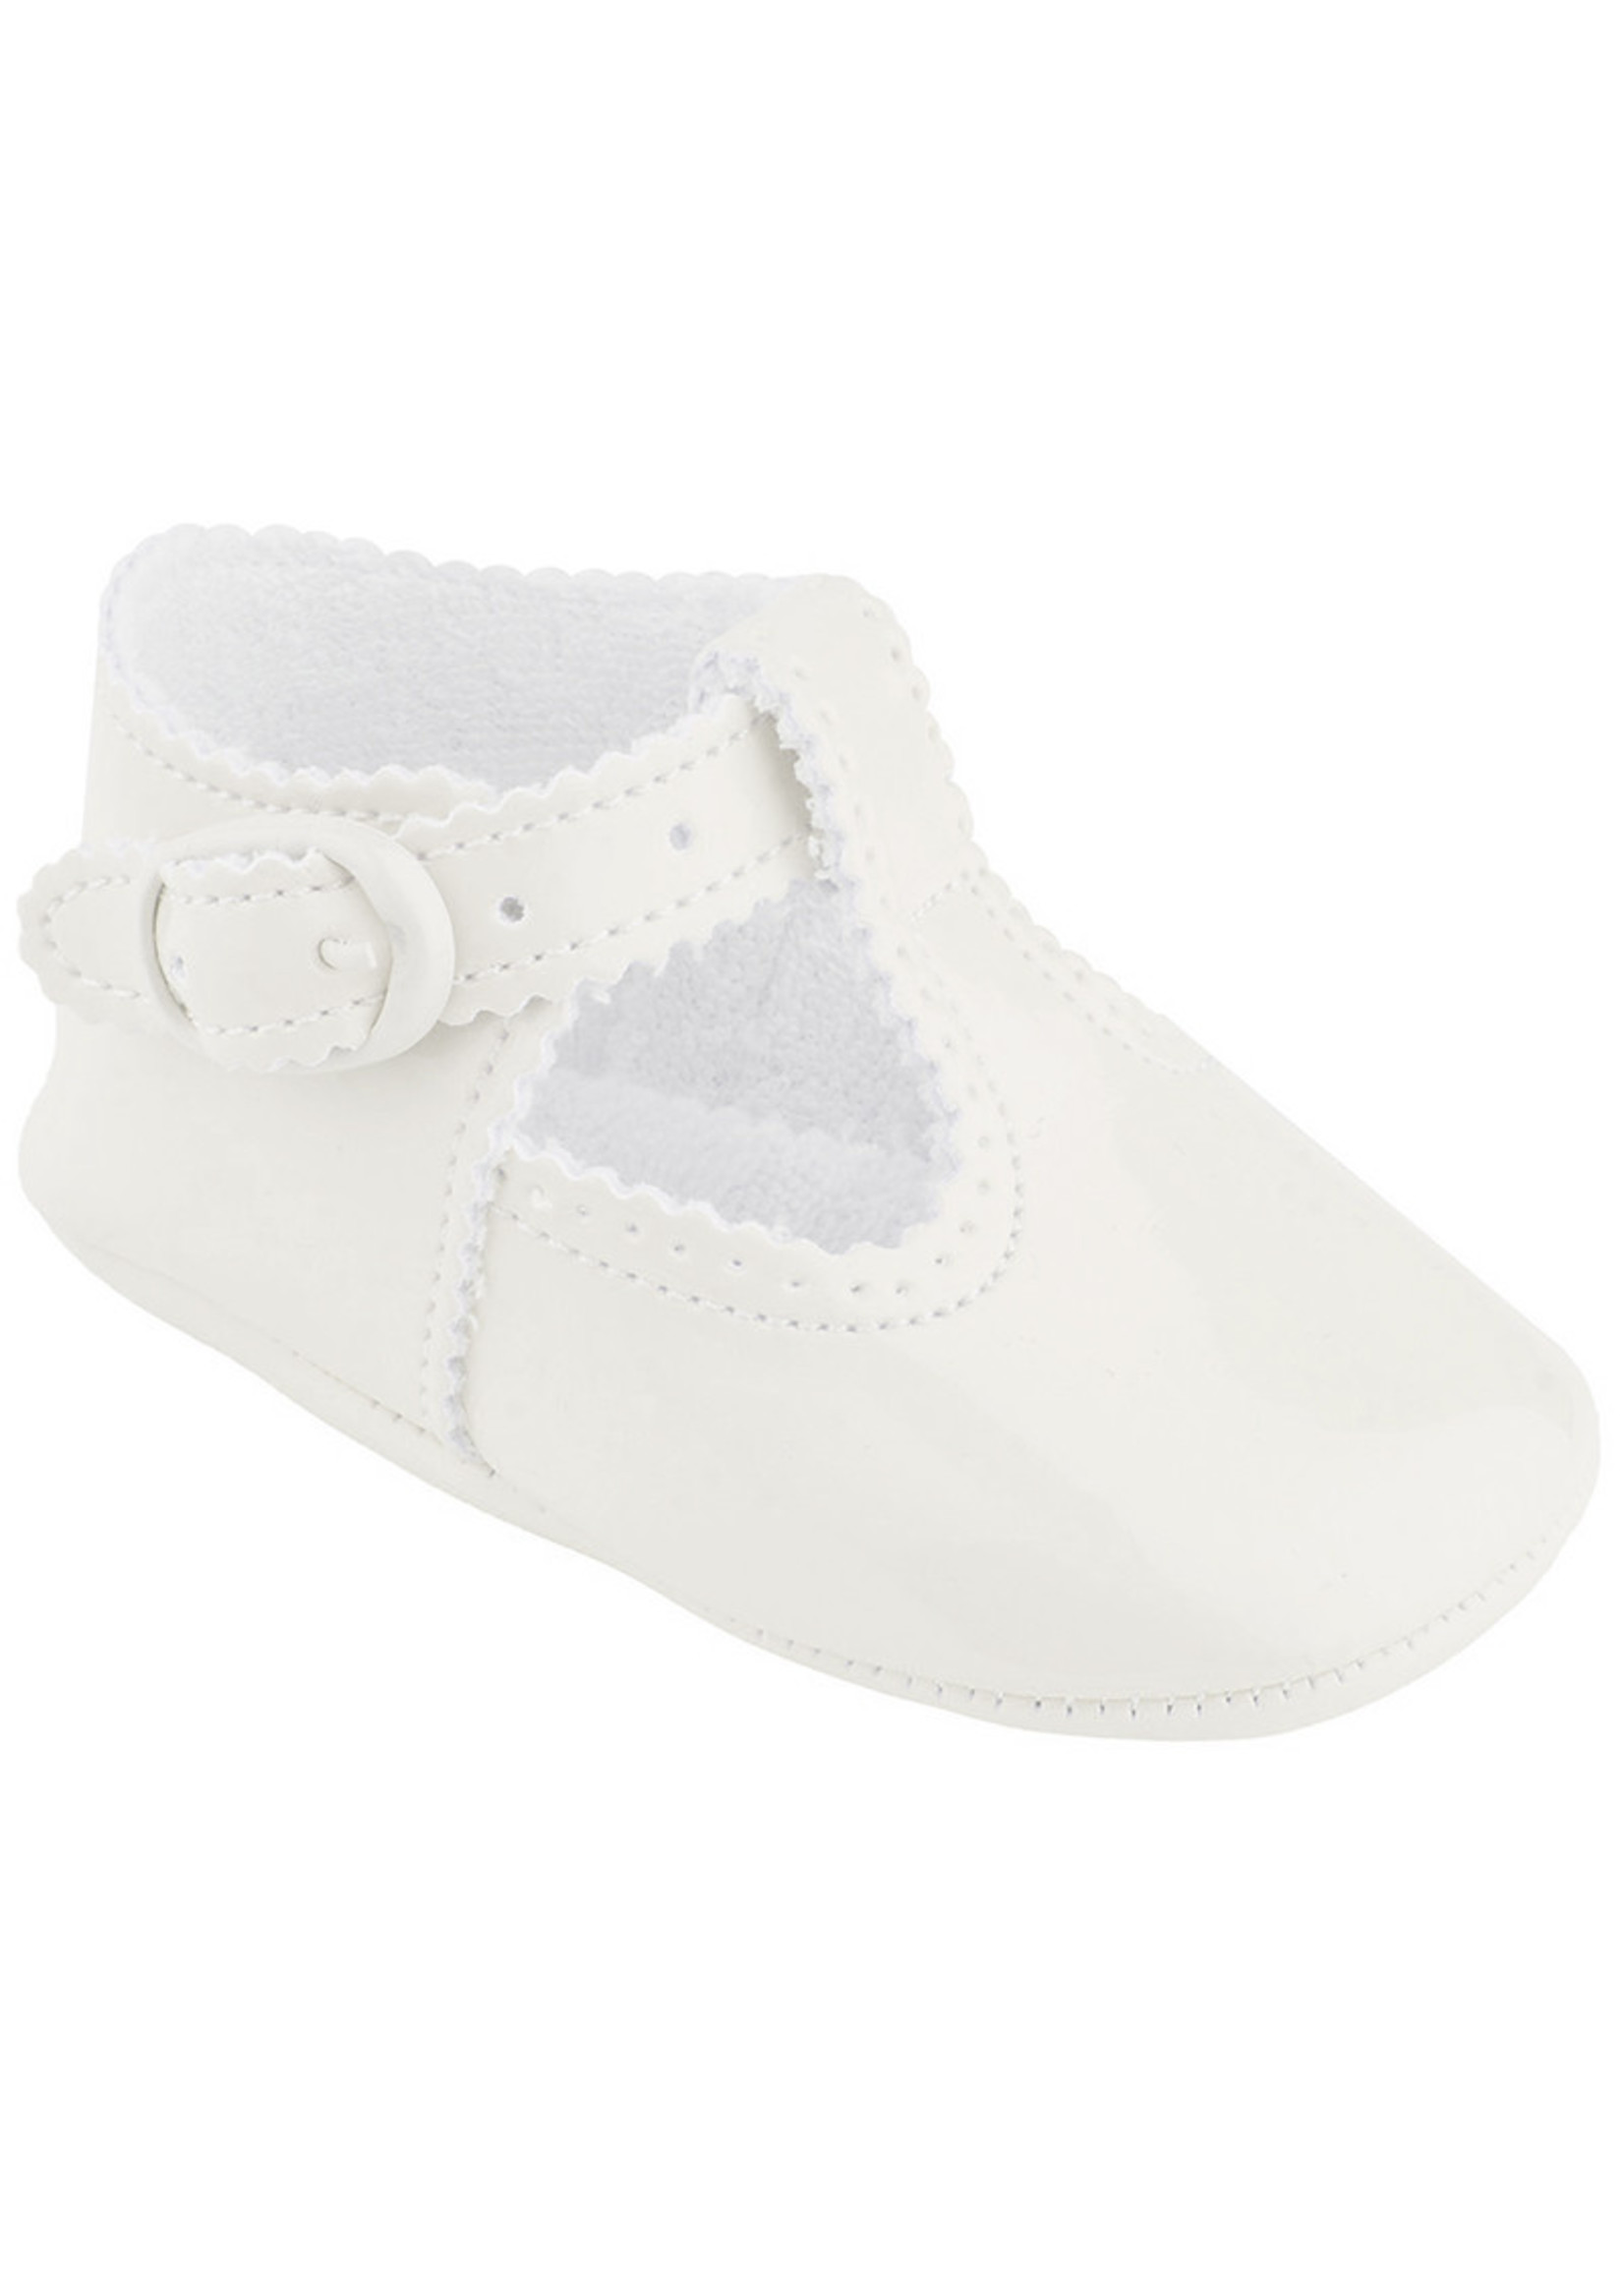 Cuquito Ivory Leather Baby Shoe